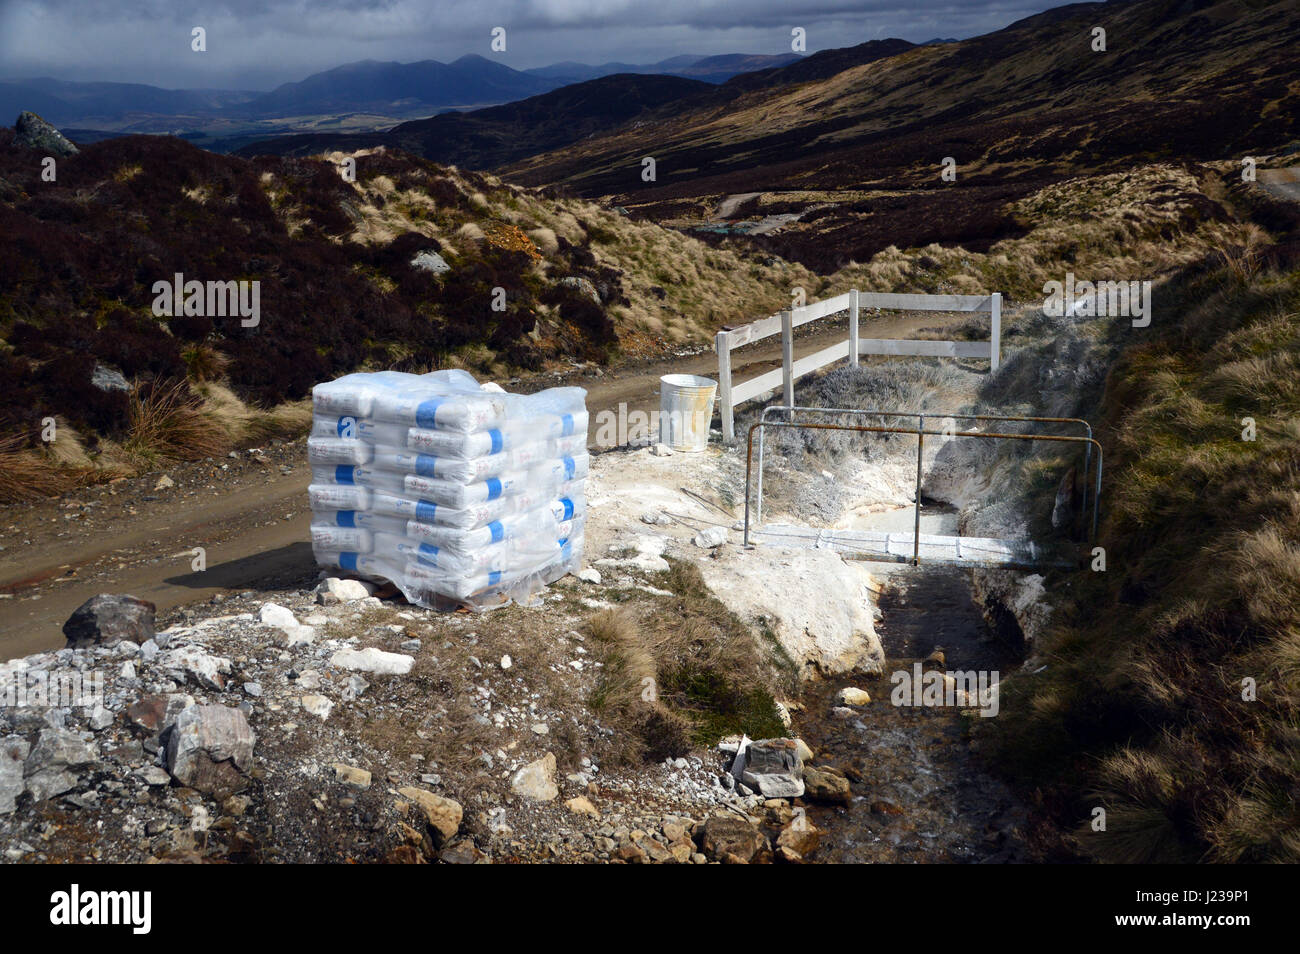 Lime Used during Mining Operations at Foss Barytes Mine near Aberfeldy, Below the Scottish Mountain Corbett Meall - Stock Image